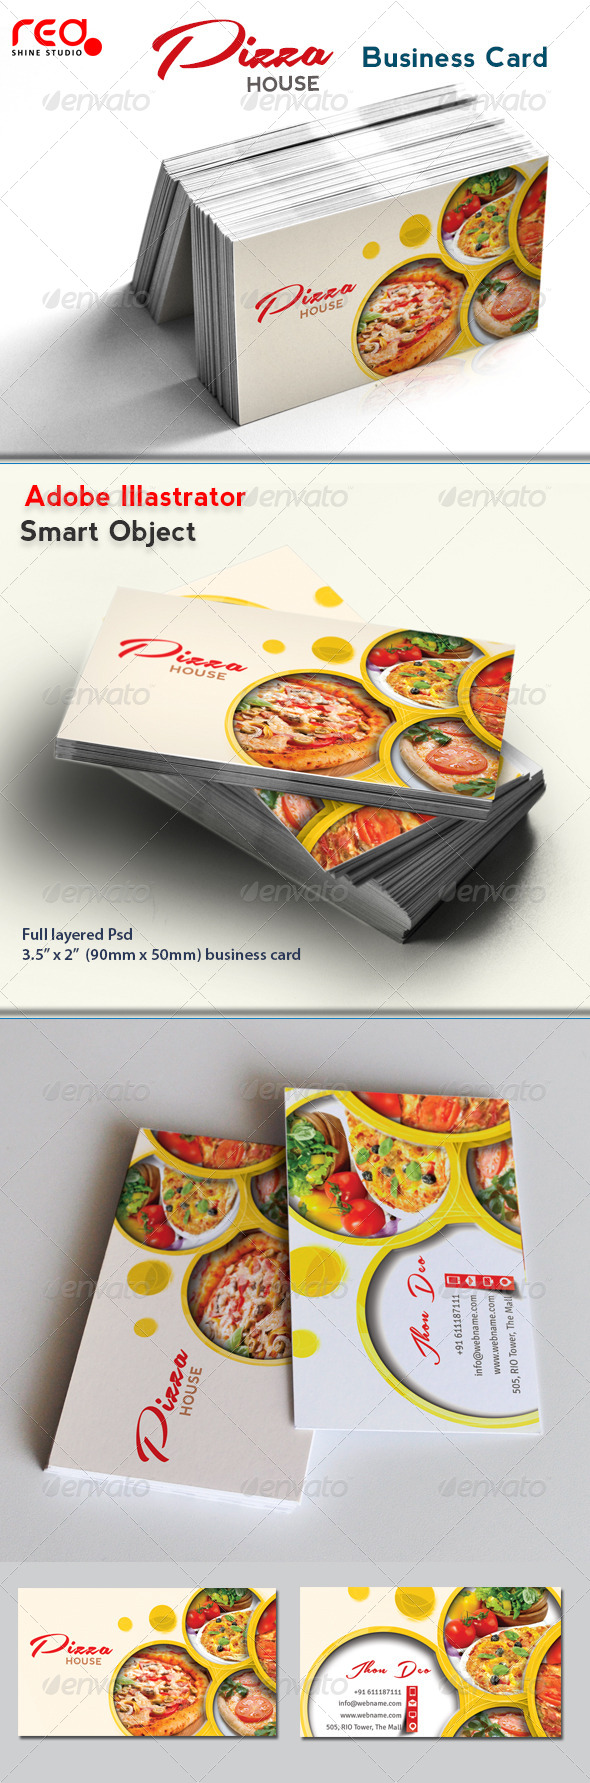 Restaurant business card by redshinestudio graphicriver restaurant business card cheaphphosting